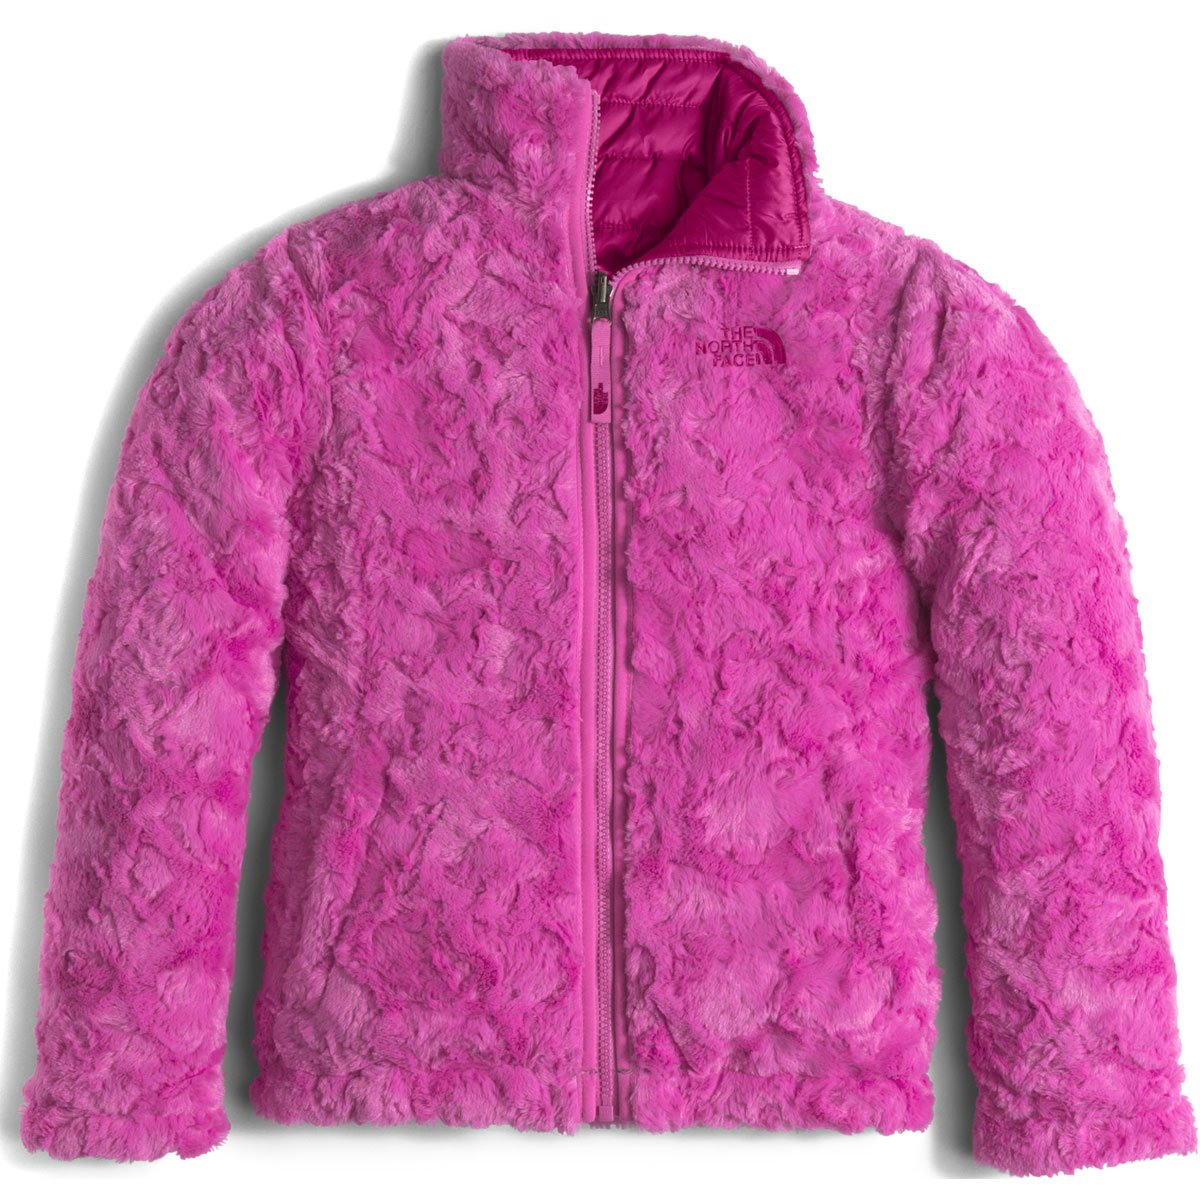 The North Face Reversible Mossbud Swirl Jacket Girls' Roxbury Pink Large by The North Face